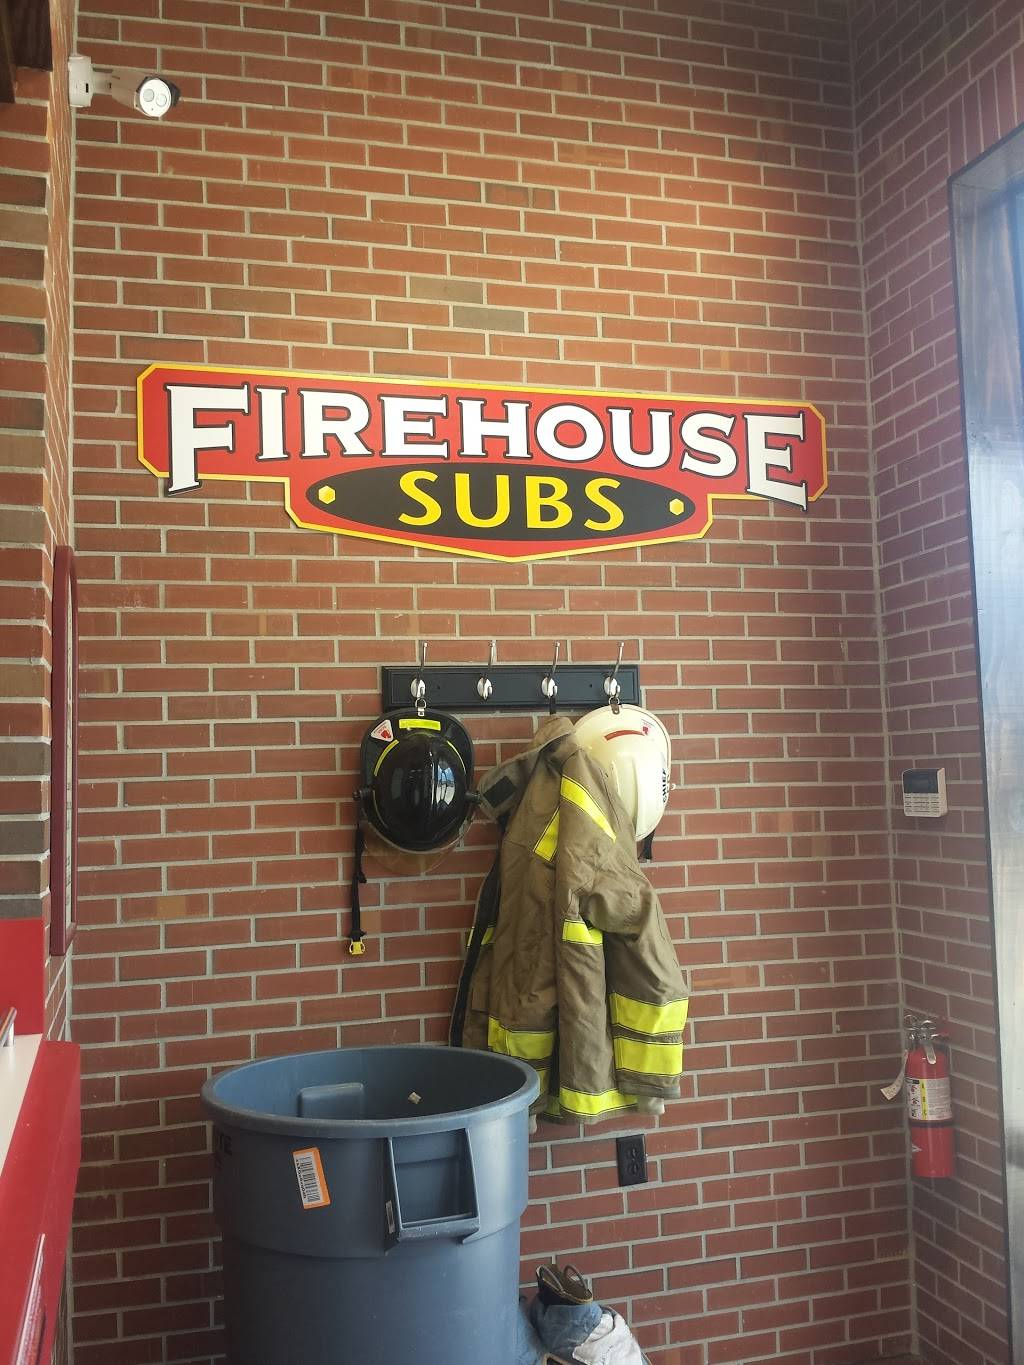 Firehouse Subs Canal Blvd | meal delivery | 402 N Canal Blvd Ste D, Thibodaux, LA 70301, USA | 9854921888 OR +1 985-492-1888